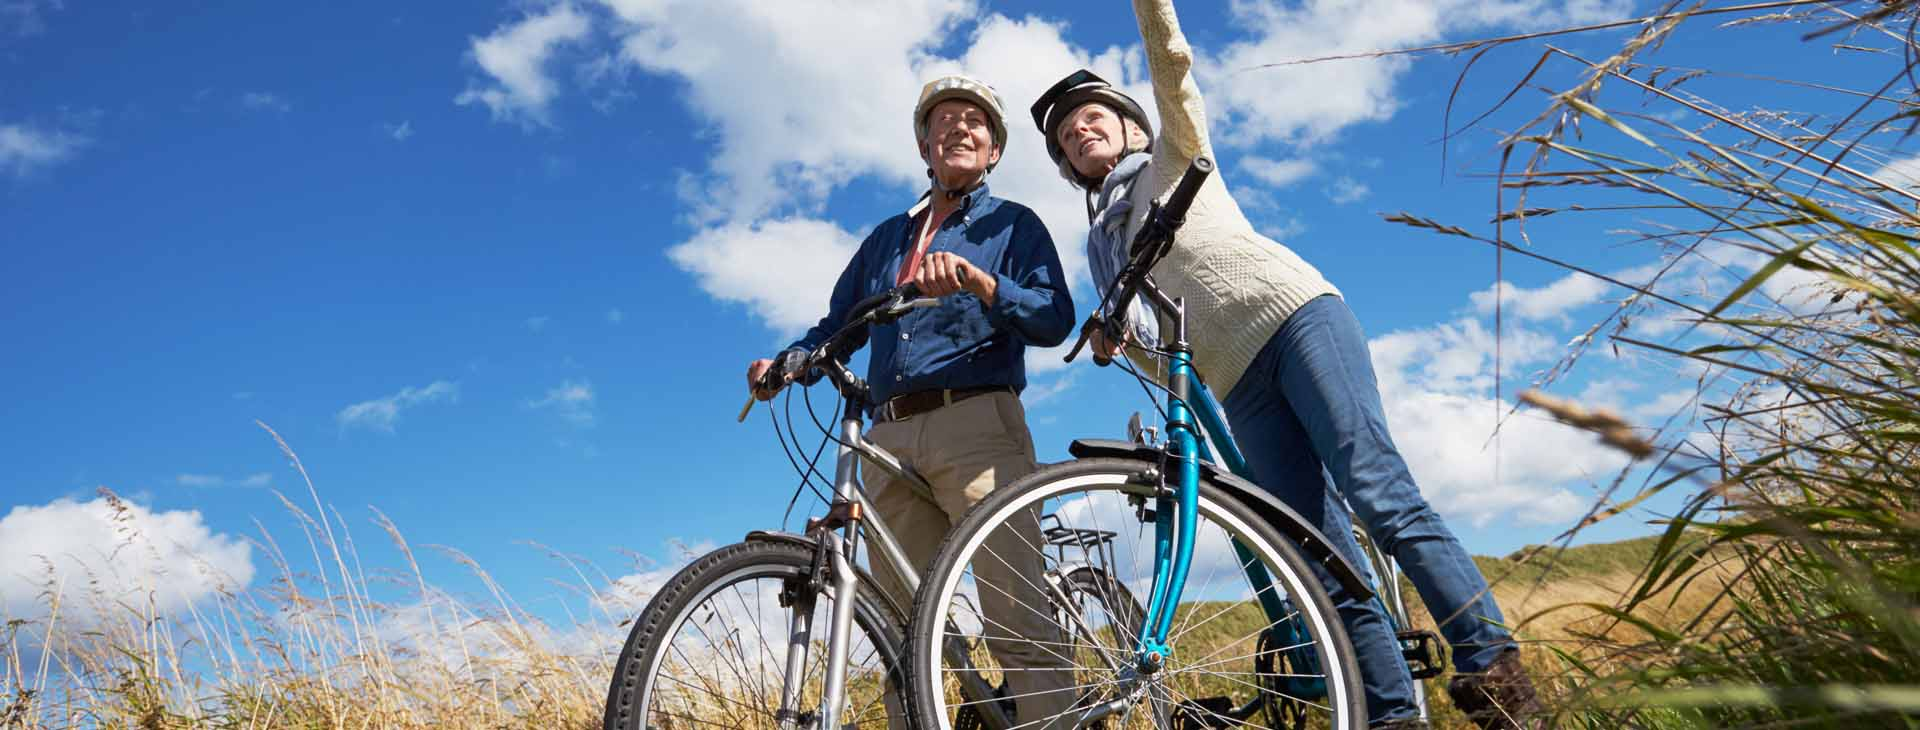 A senior couple on an outdoor bike ride